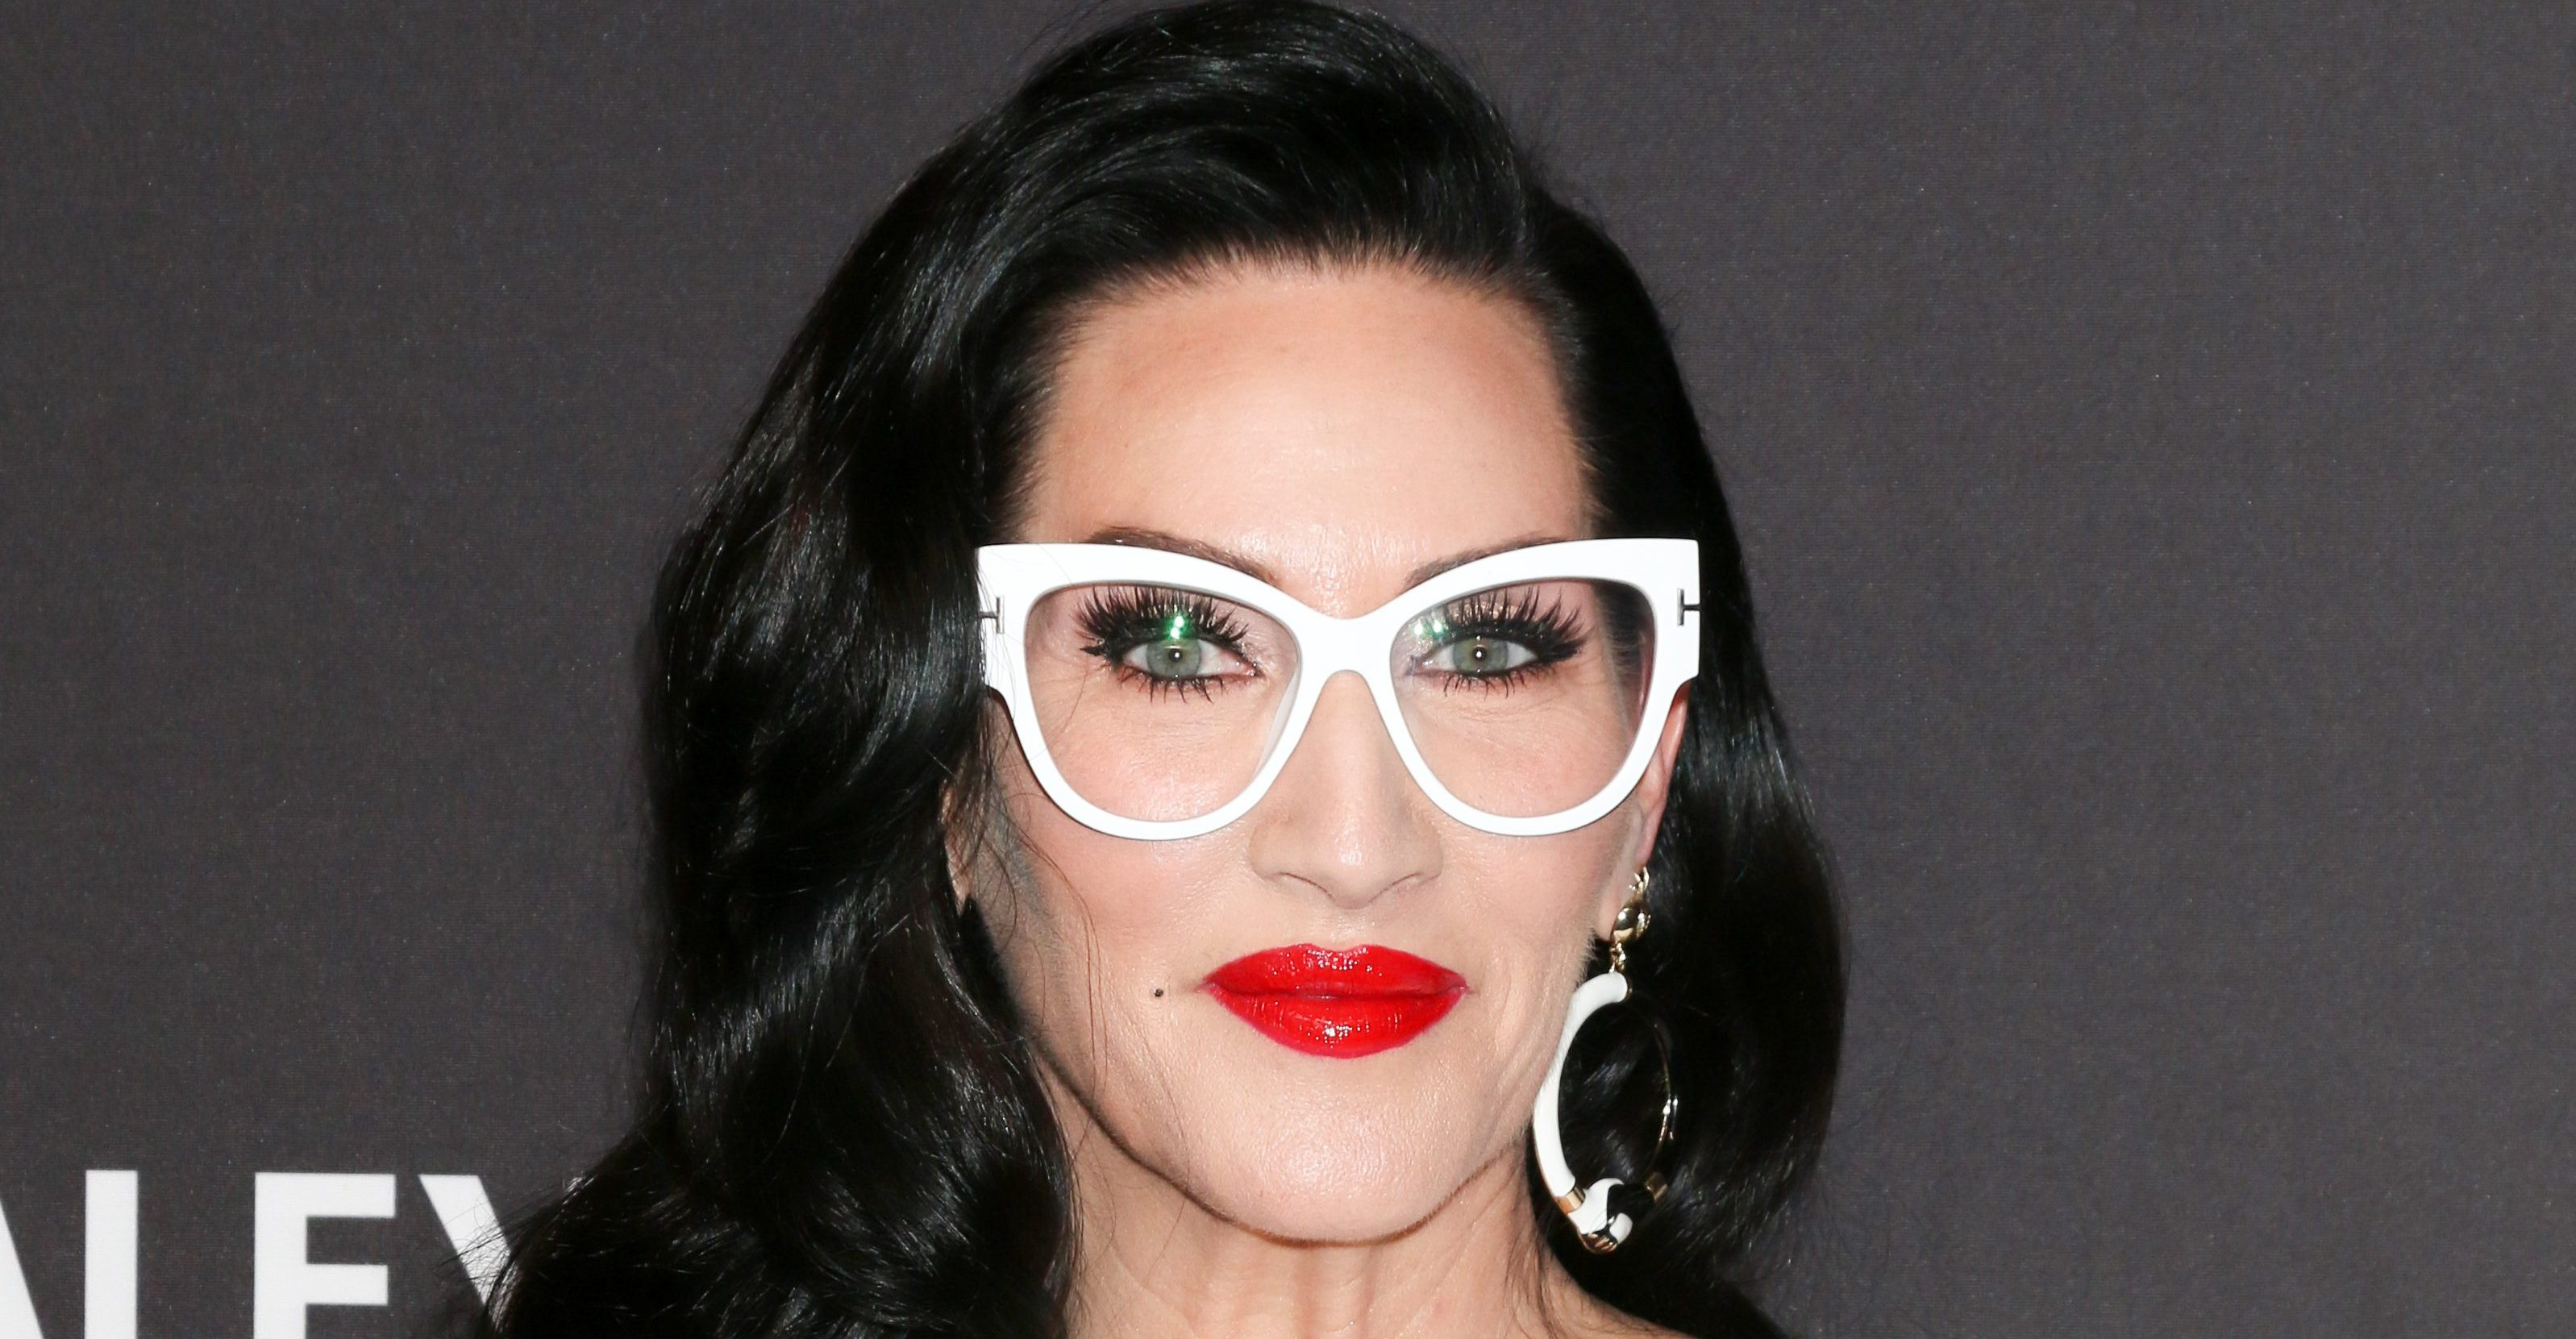 Michelle Visage is the latest star to join this year's Strictly Come Dancing